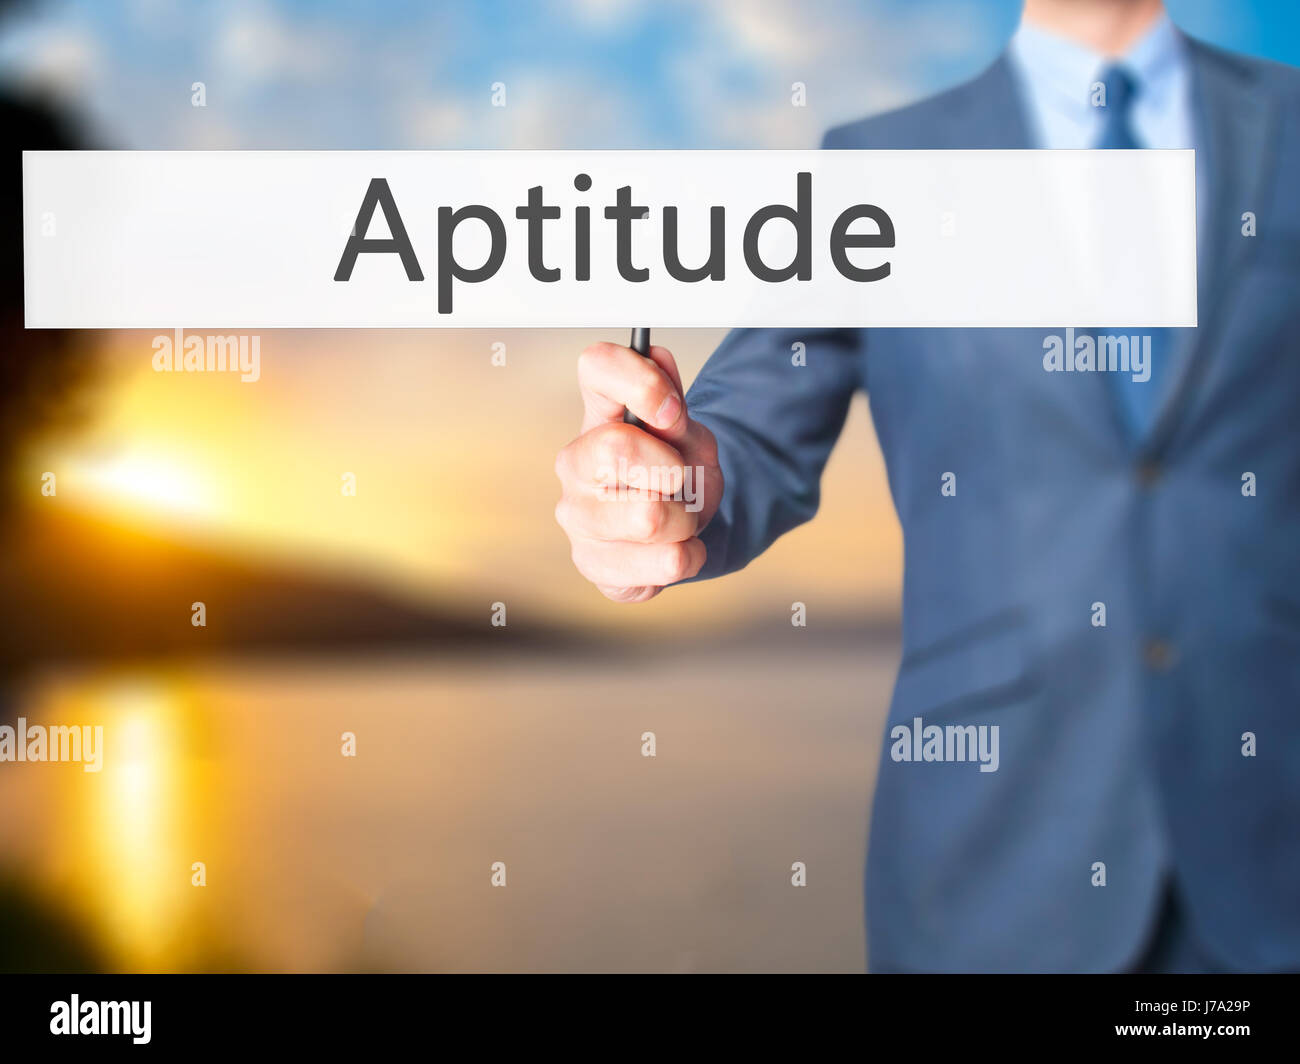 Aptitude - Business man showing signe. Le commerce, la technologie, internet concept. Stock Photo Photo Stock